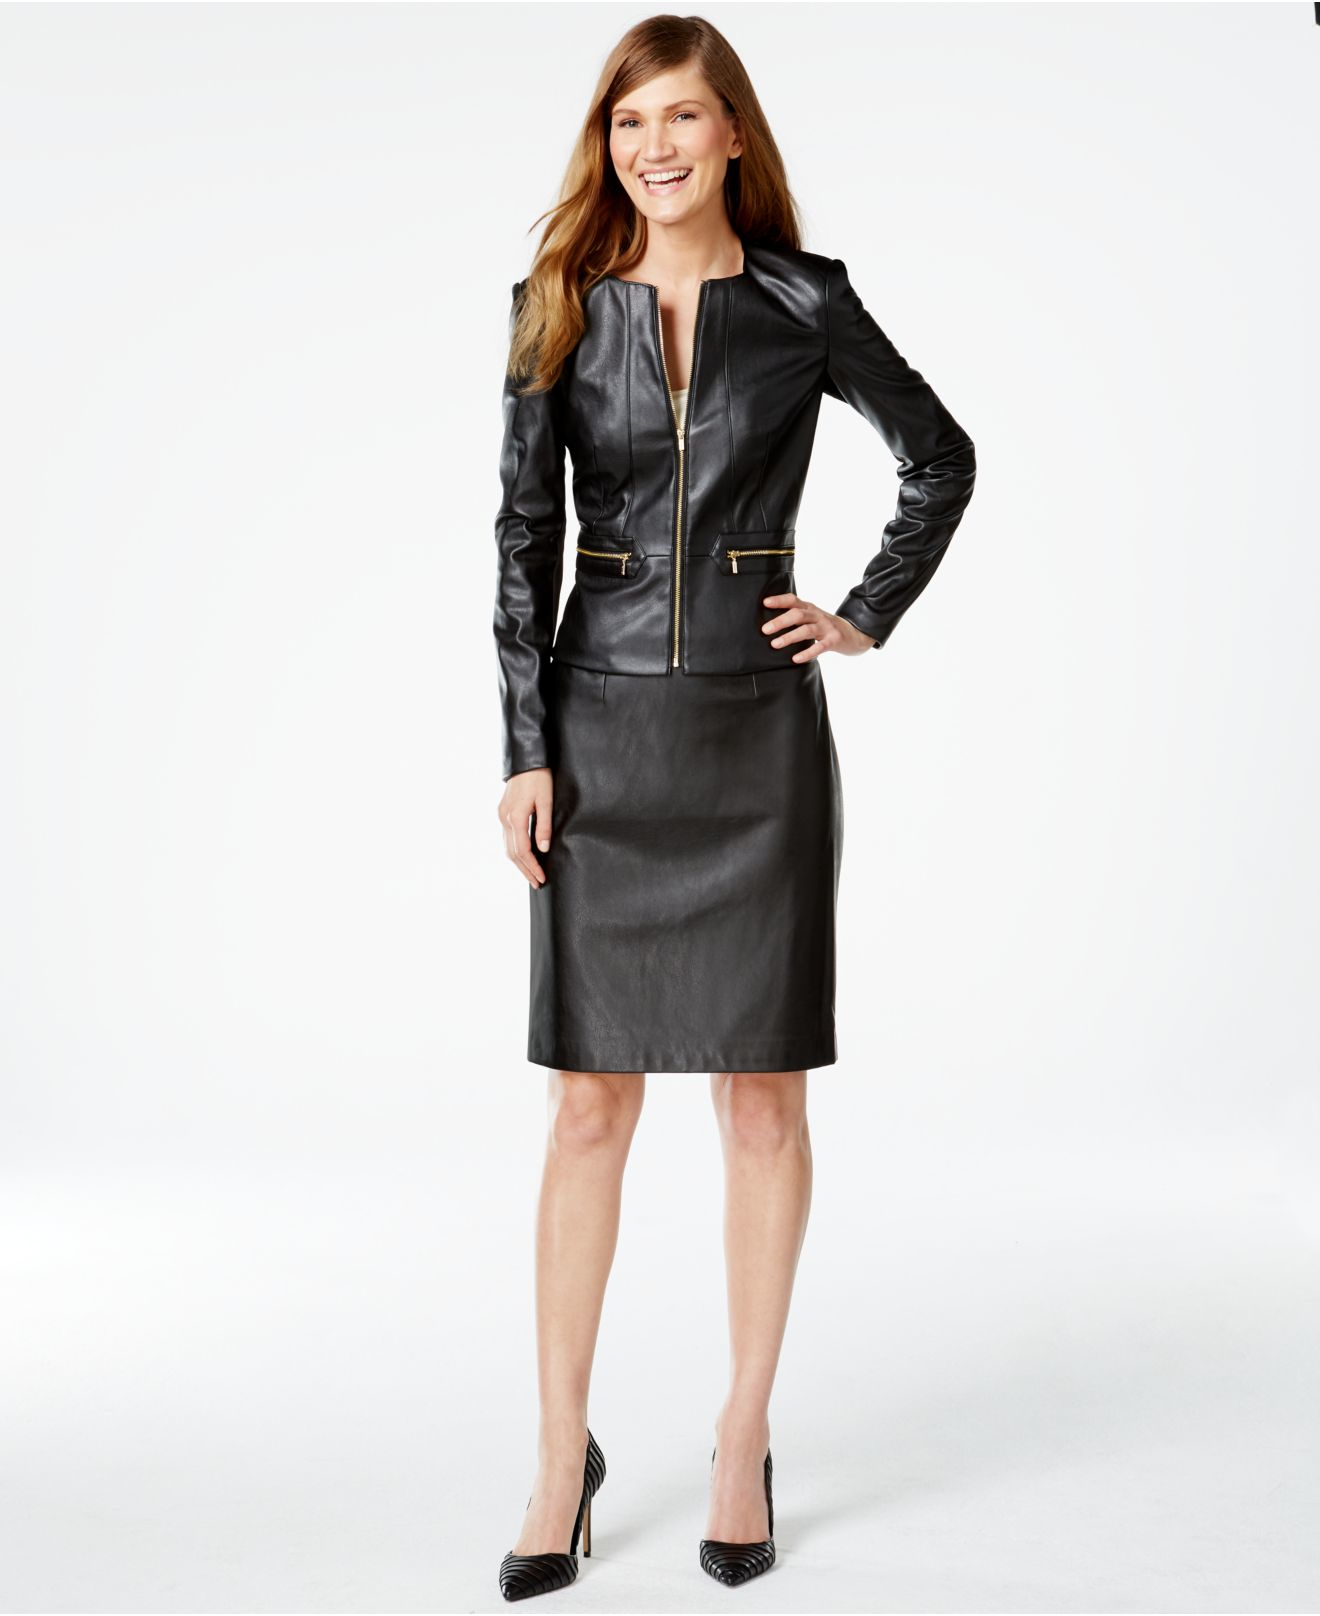 32bf4b107eb Lyst - Calvin Klein Faux-leather Zip-front Jacket in Black